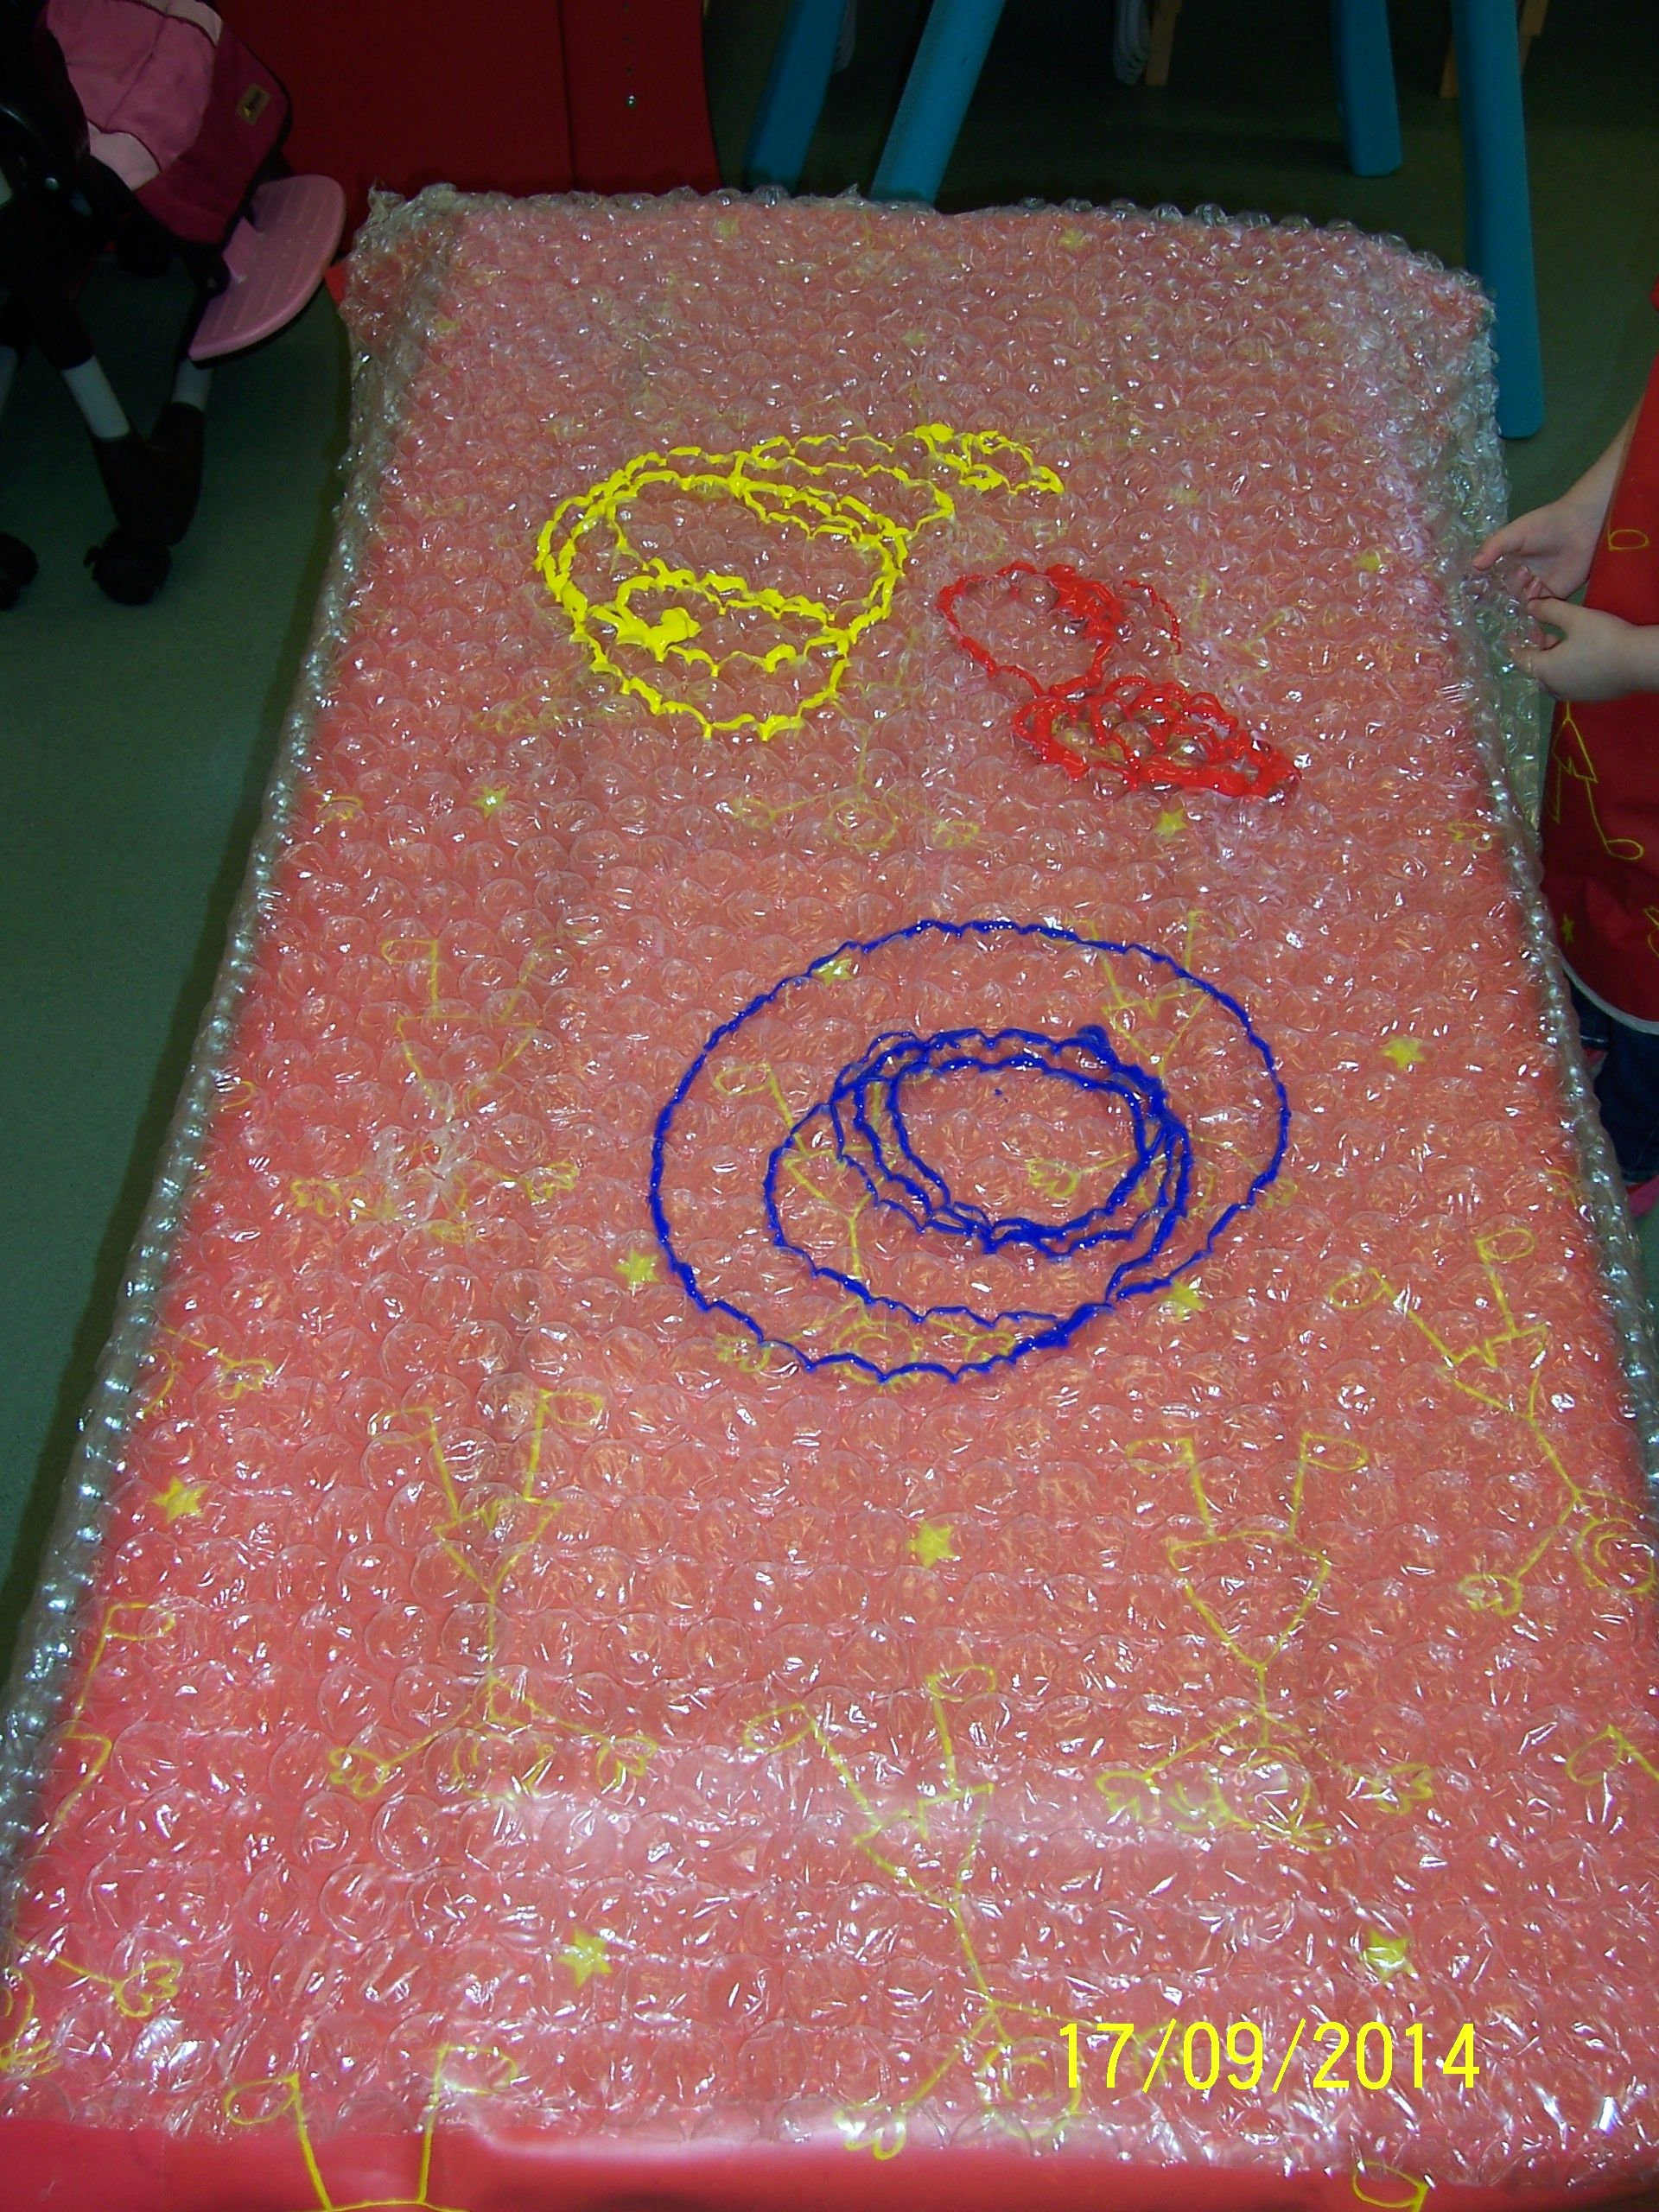 The children enjoyed this sensory colour mixing activity, we expored what hapened when we mixed the colours together and talked about how the paint and bubble wrap felt when they rubbed their hands over it